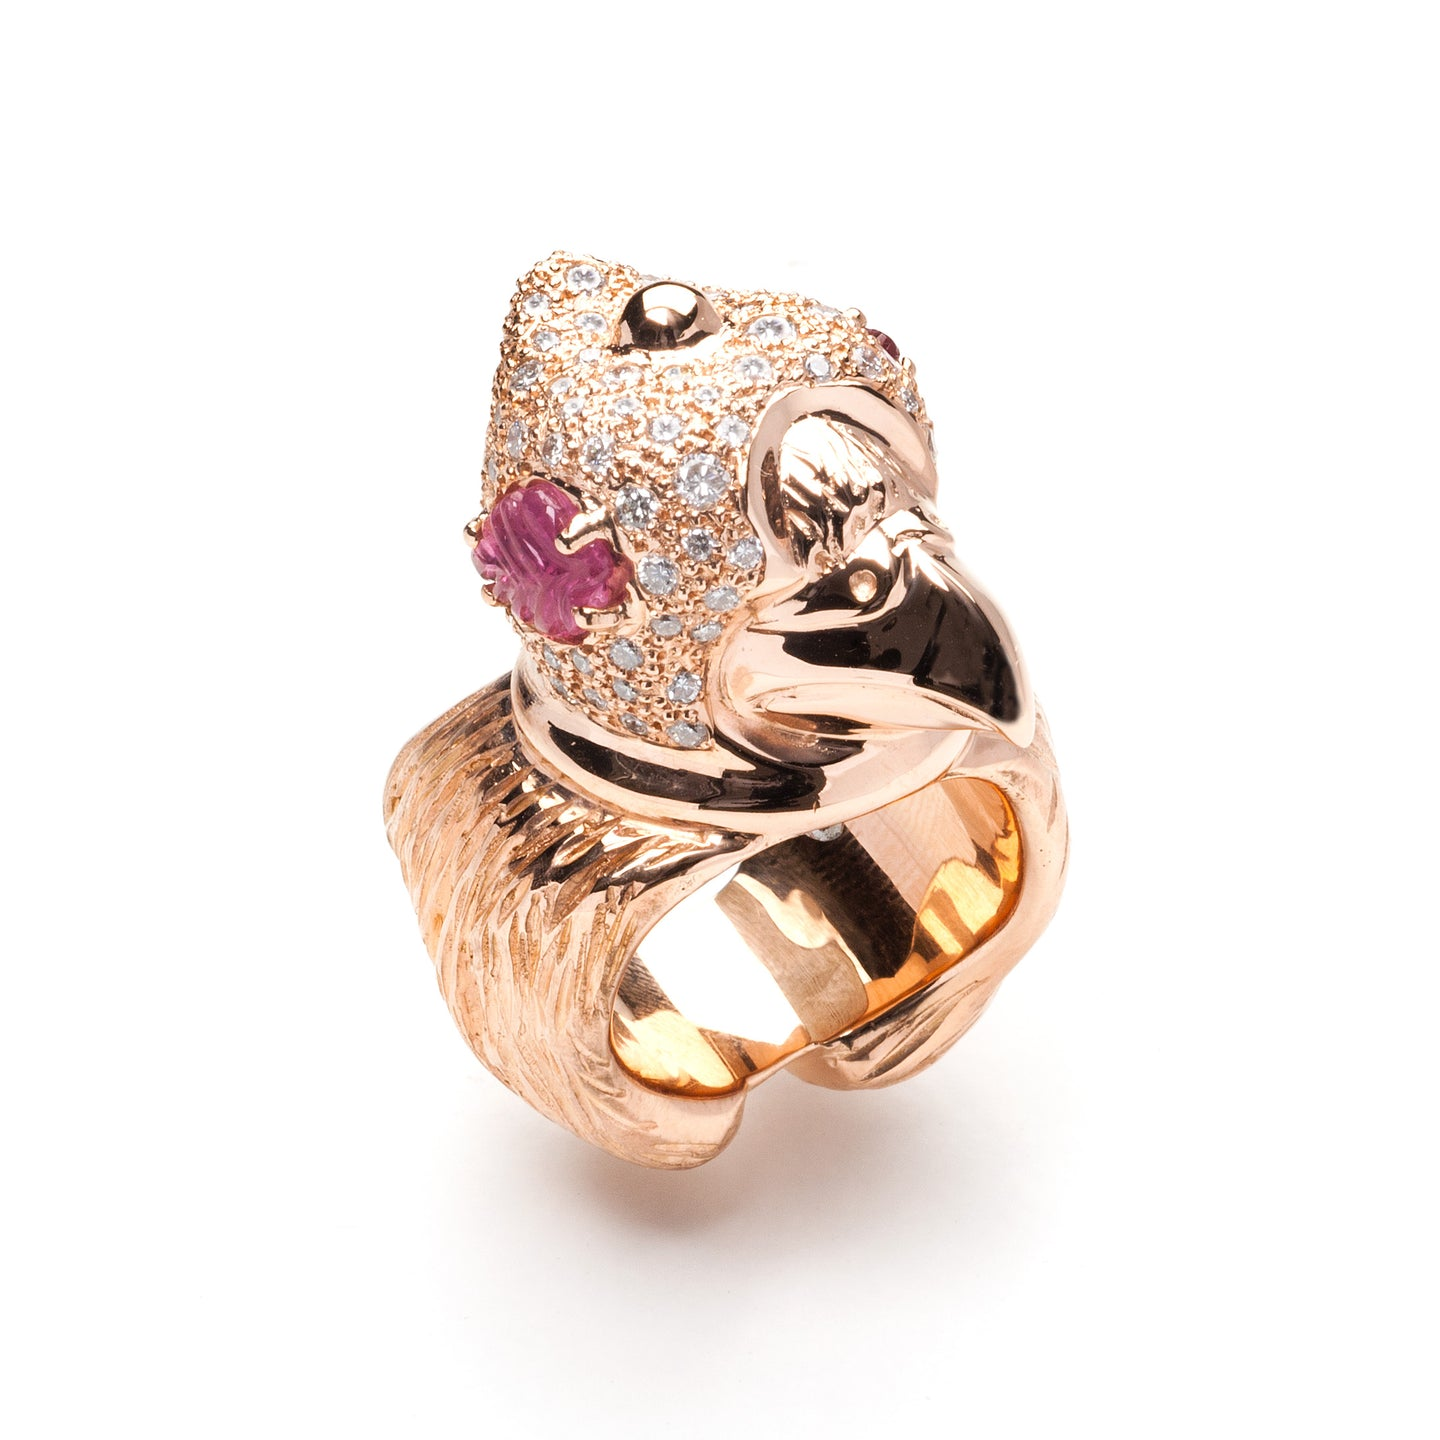 Shahryar Falcon Ring  - 18k Rose Gold